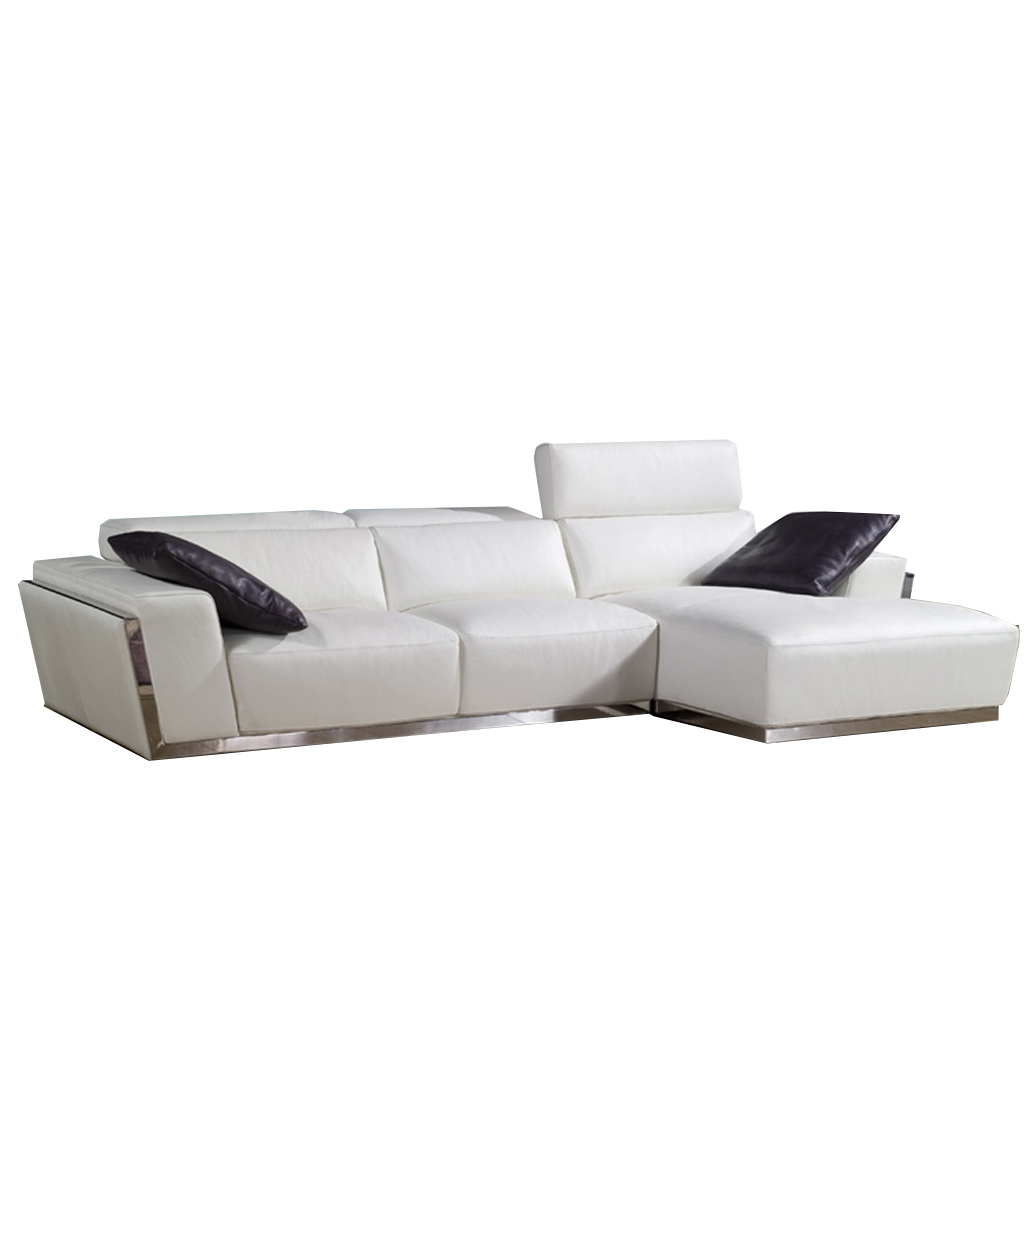 bianca sectional sofa costco best for bad back stage design